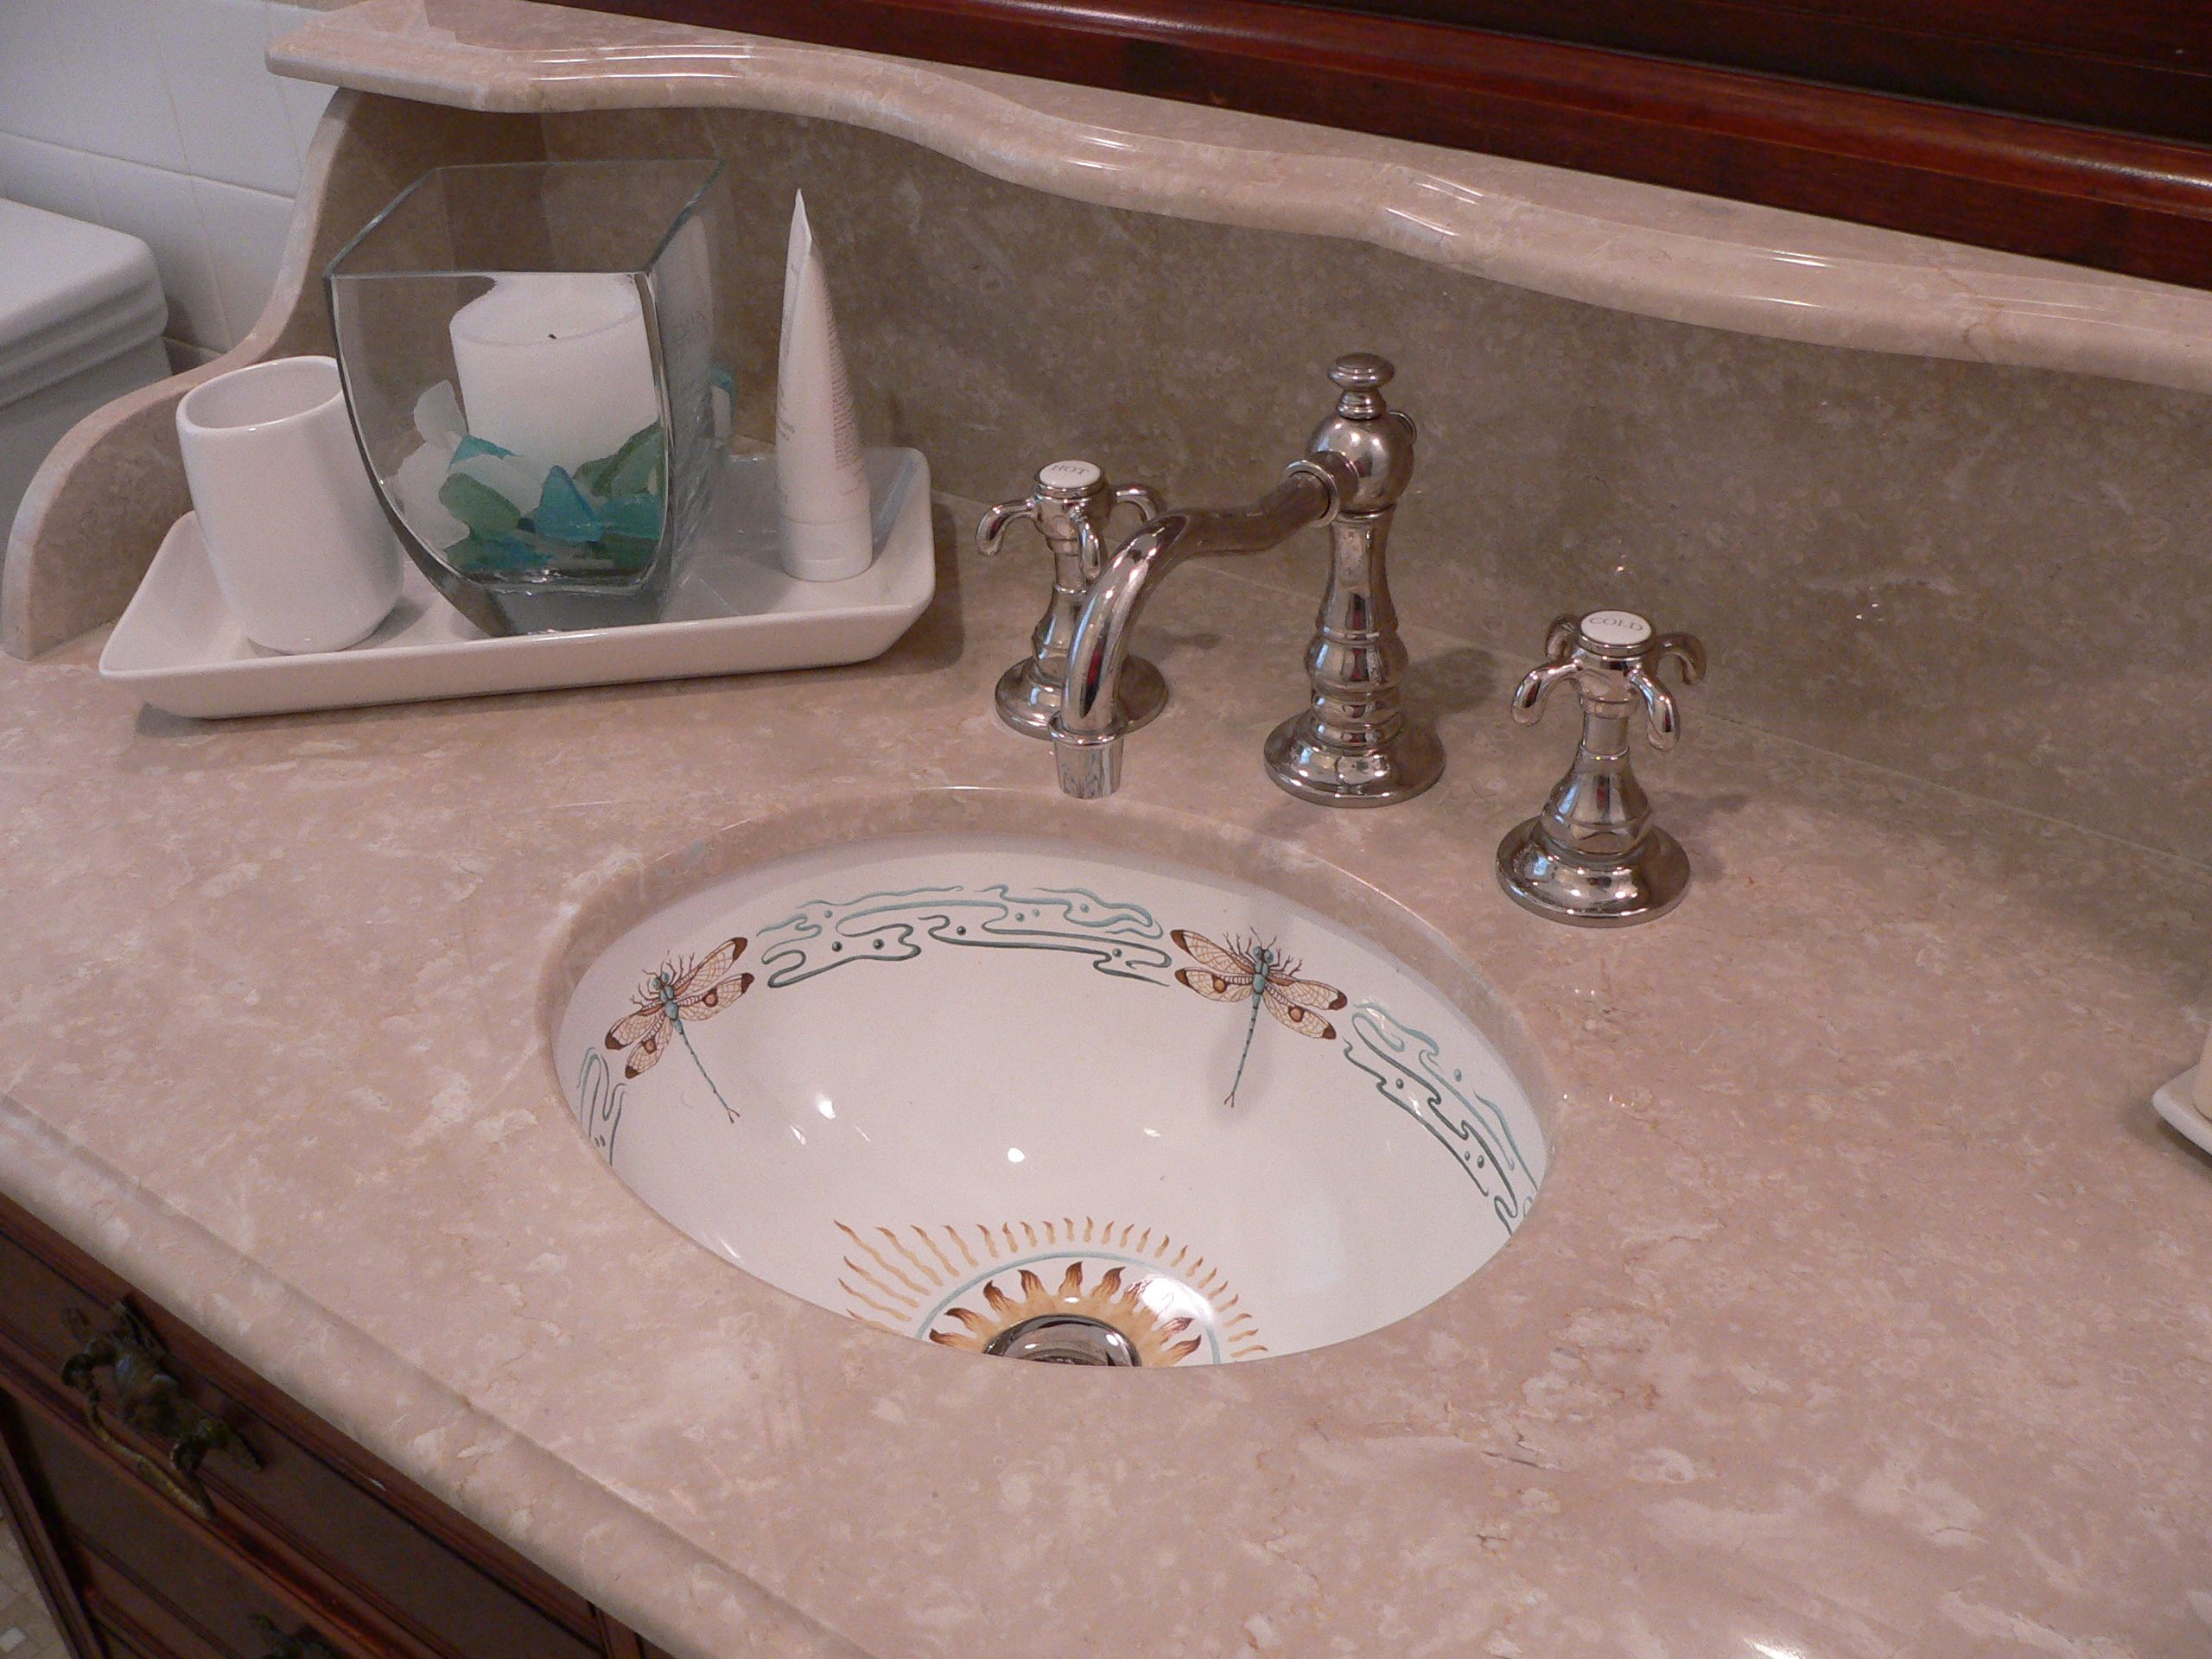 Dragonfly motif on sink painted by Annette Etcheverry from